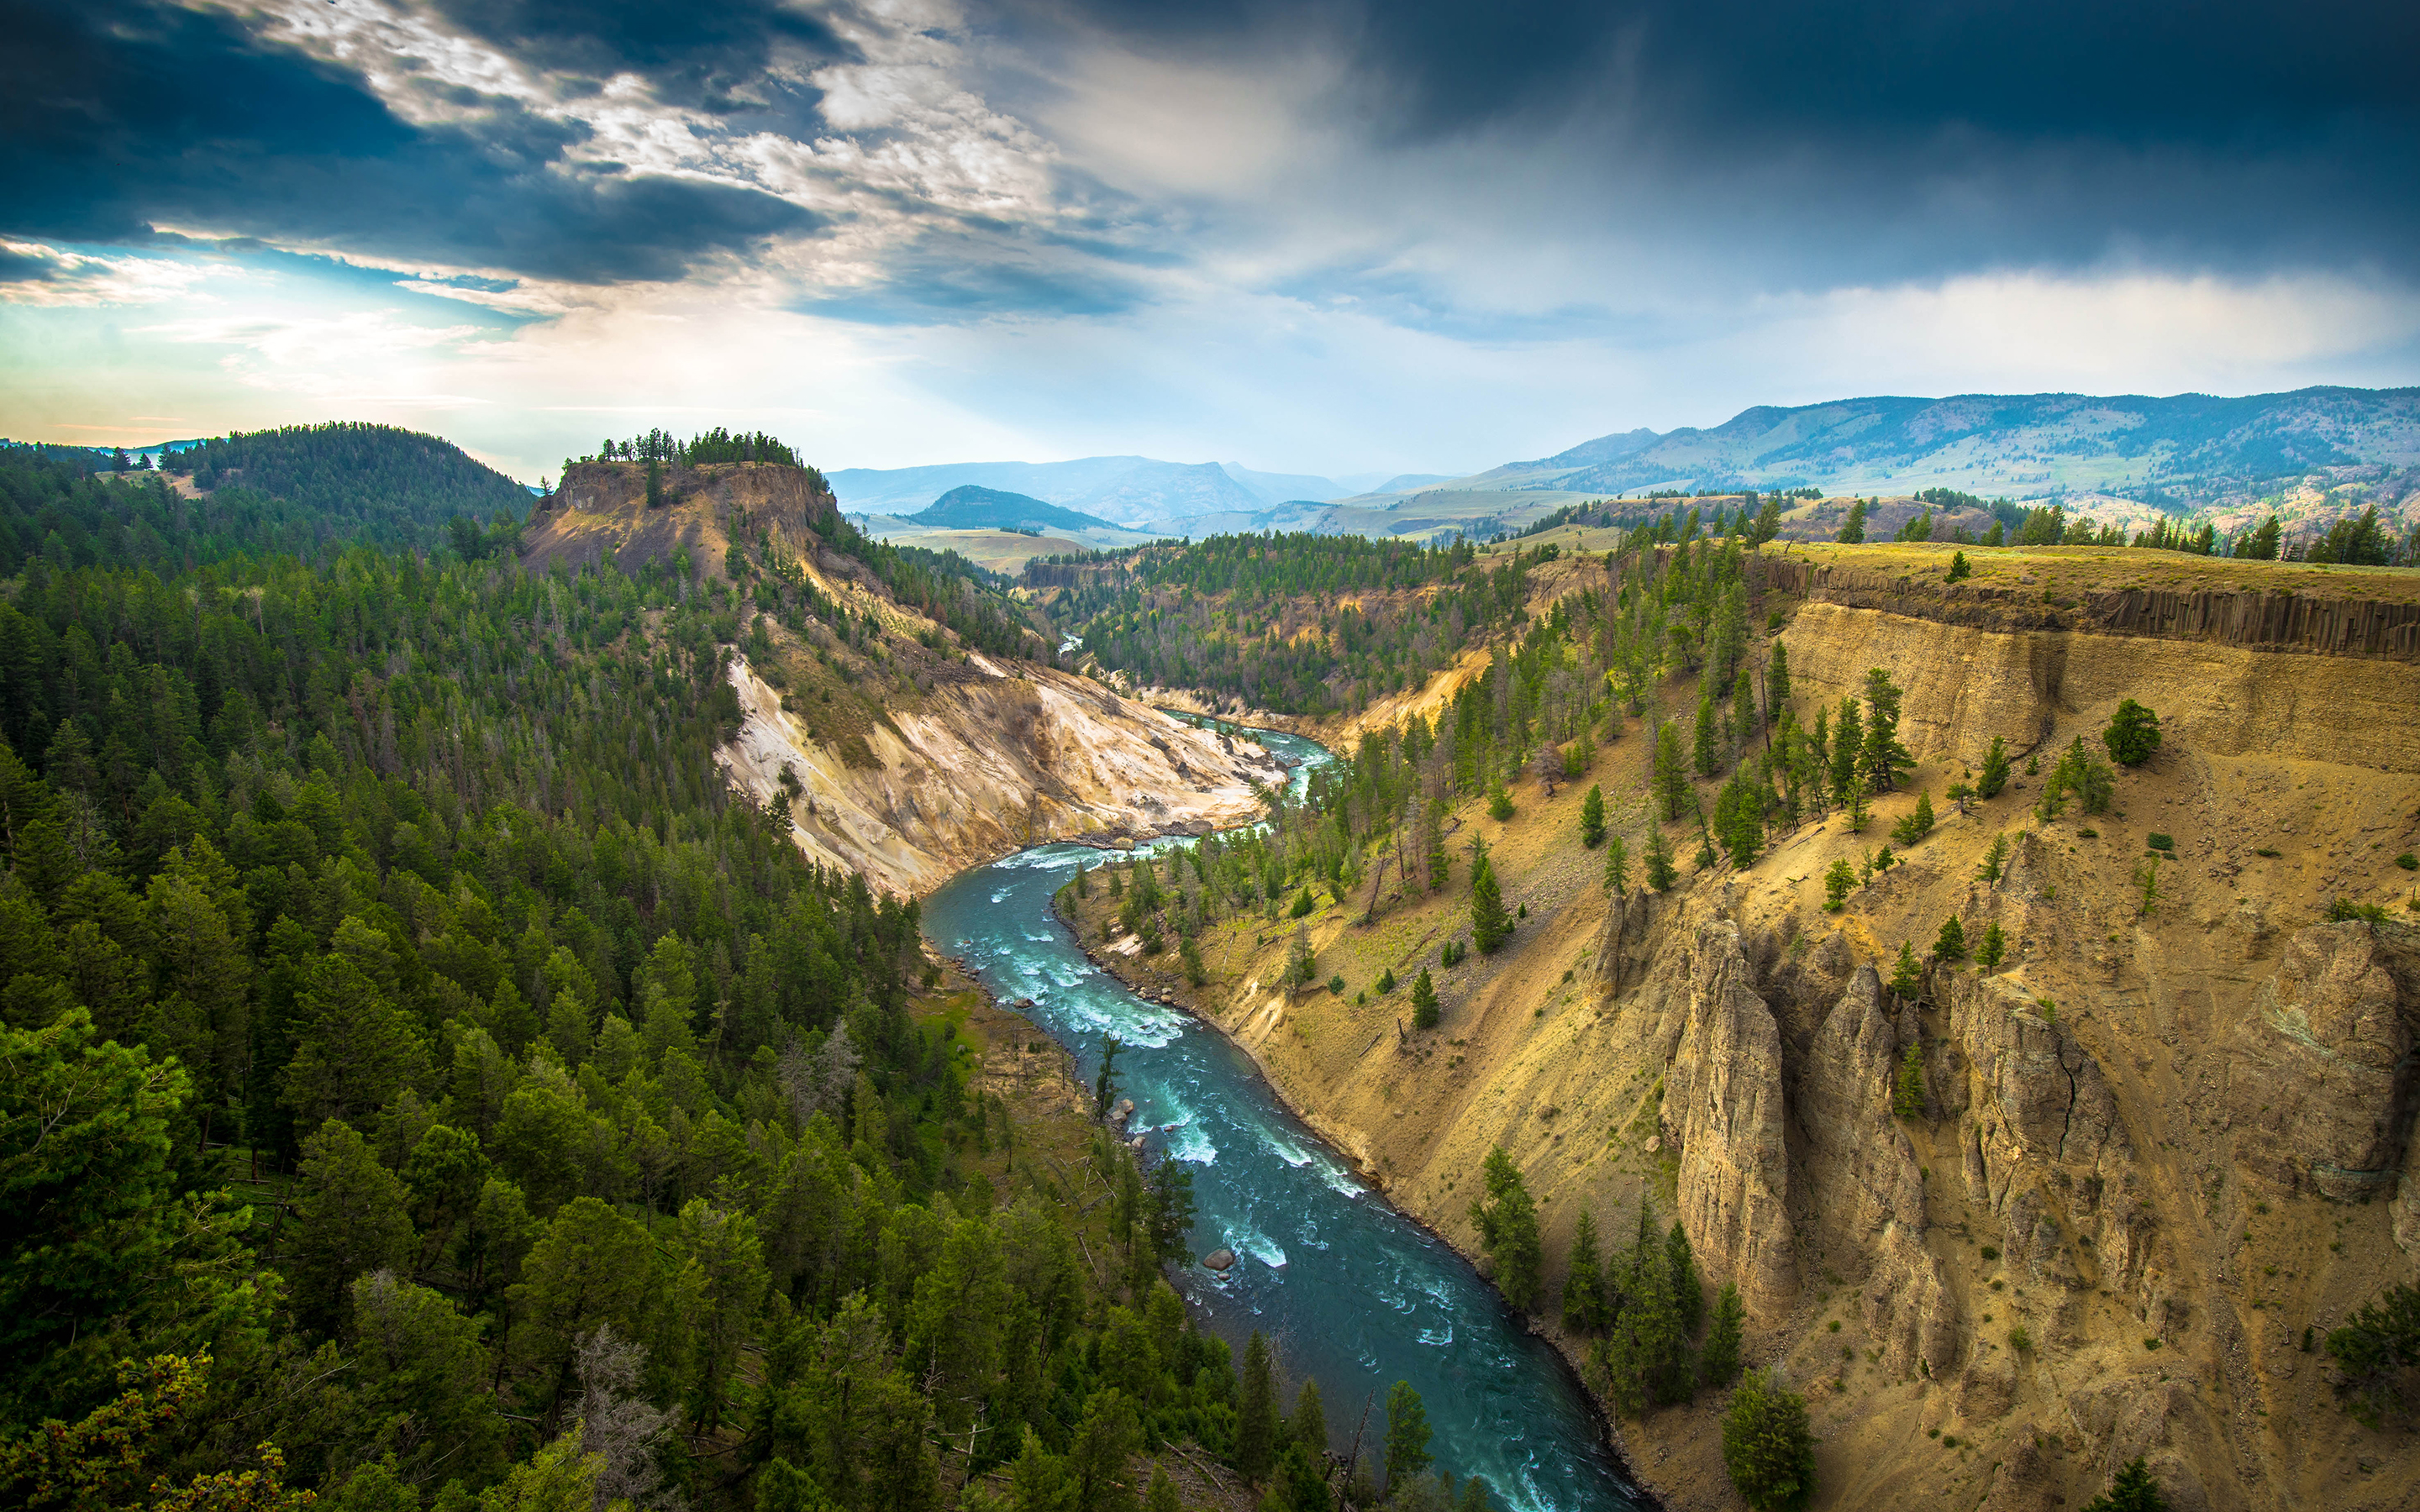 HD Wallpapers Gr Canyon of the Yellowstone